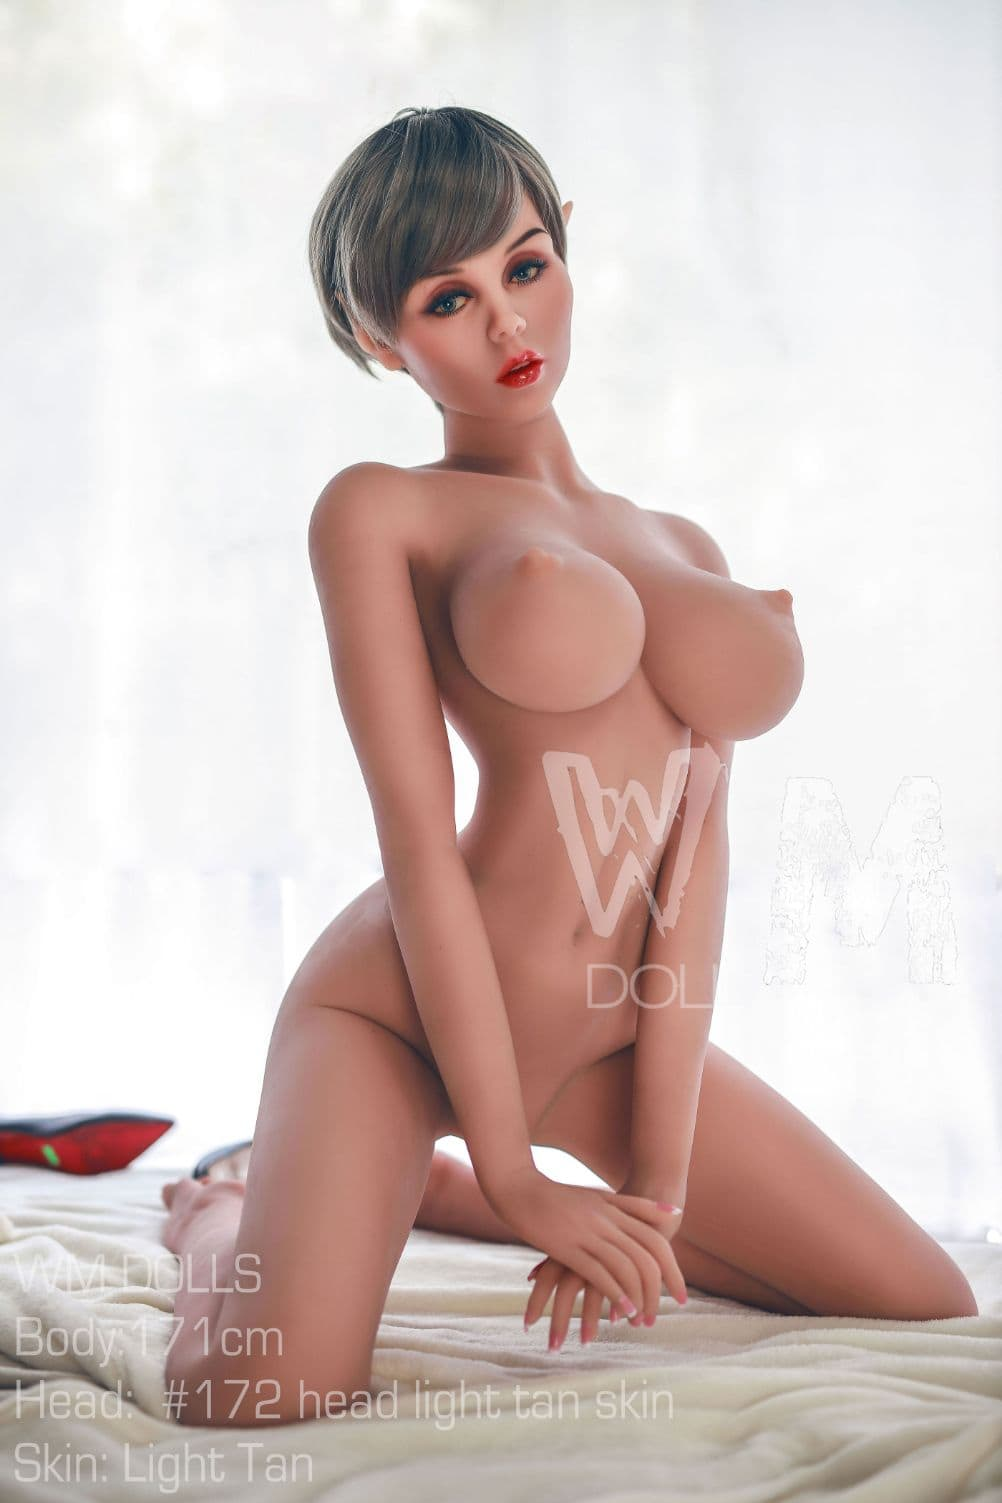 kristina 171cm 5ft6 brown hair fantasy featured big boobs tan skin tpe wm sex doll(9)